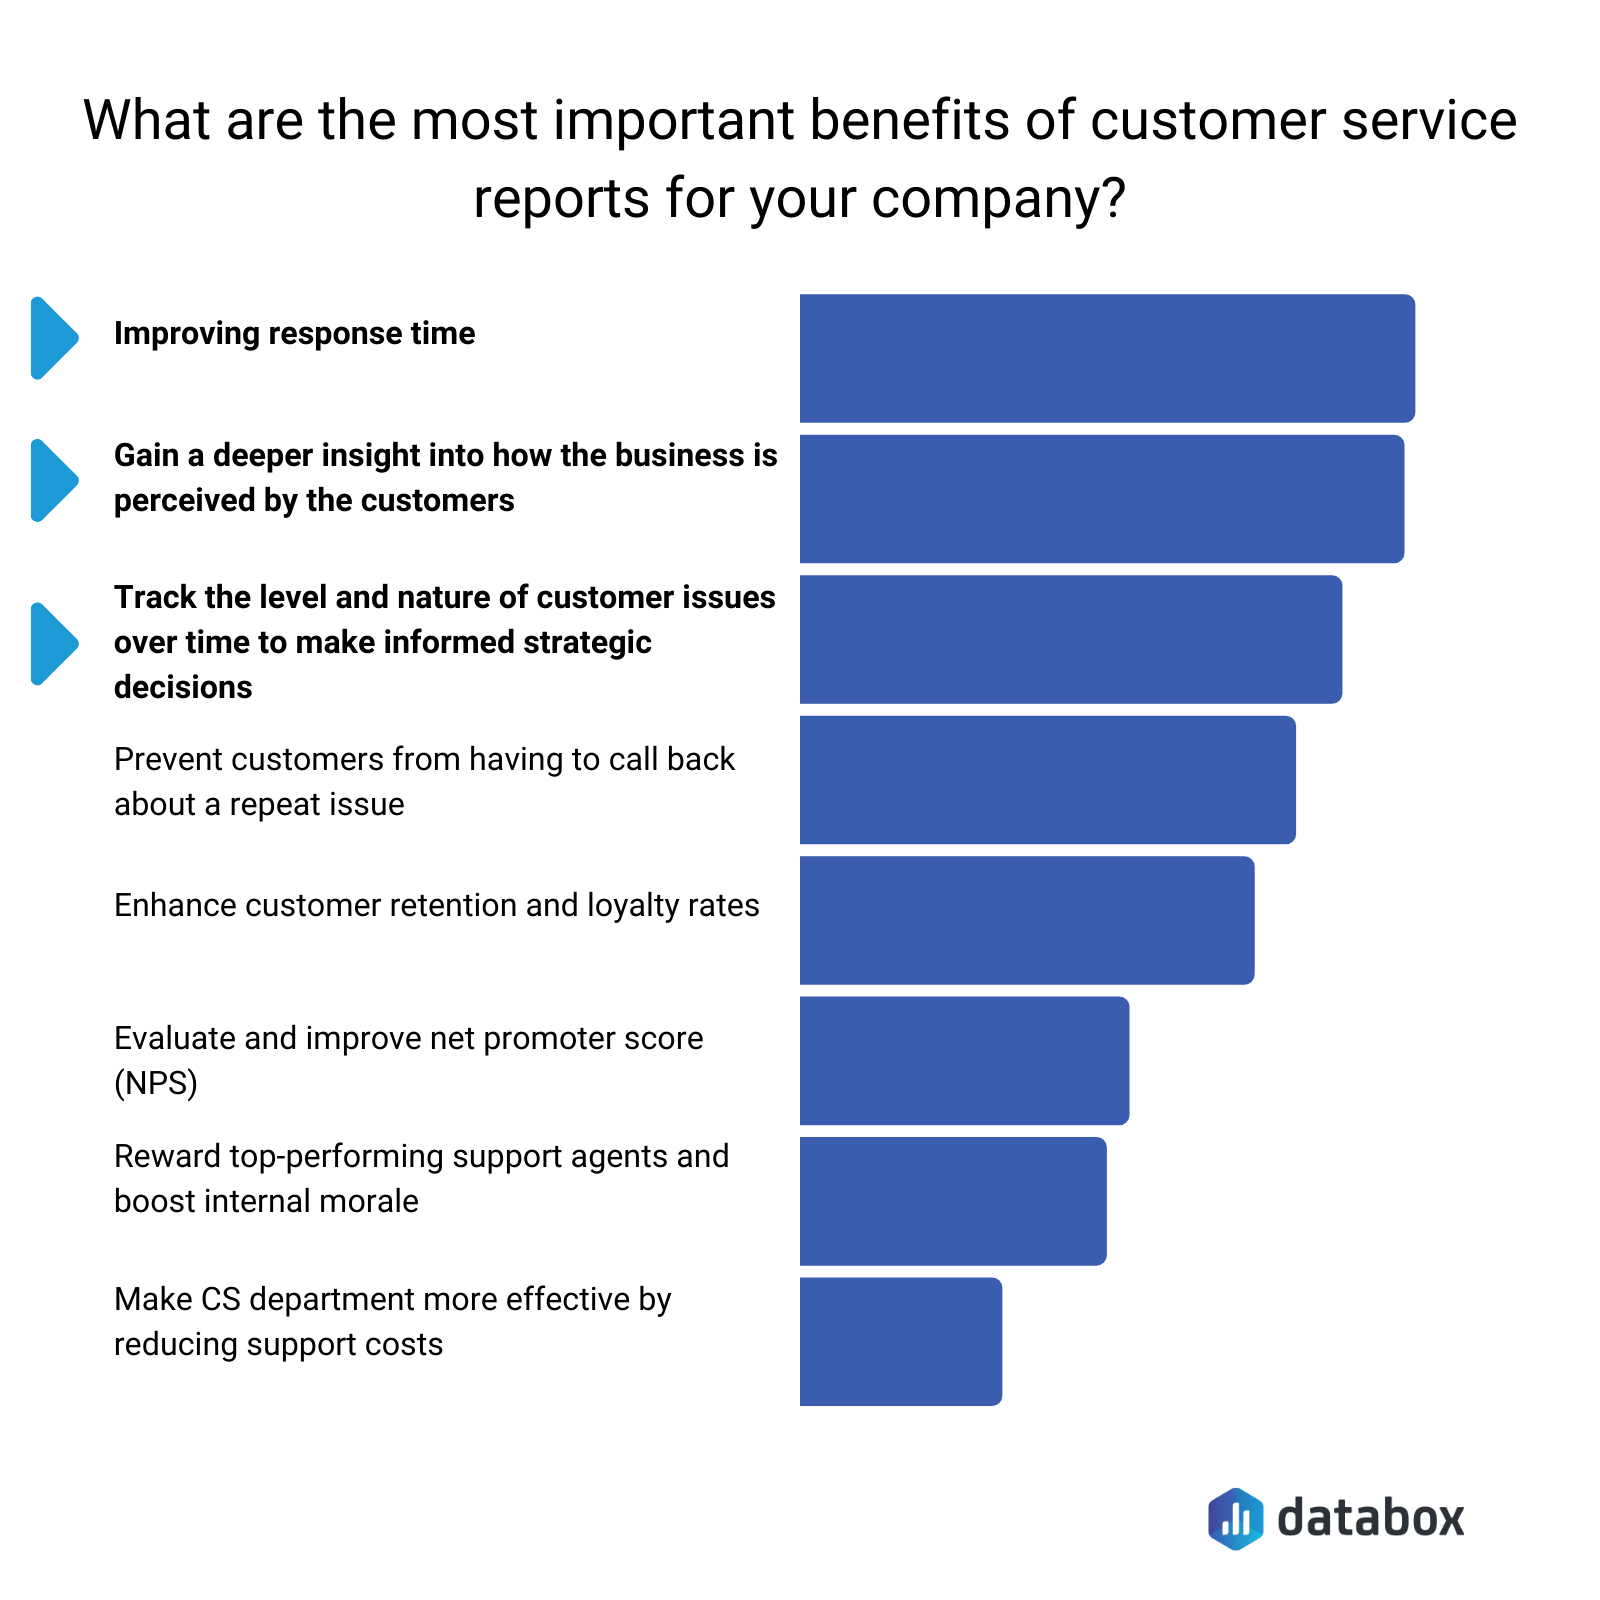 Most important benefits of customer service reports